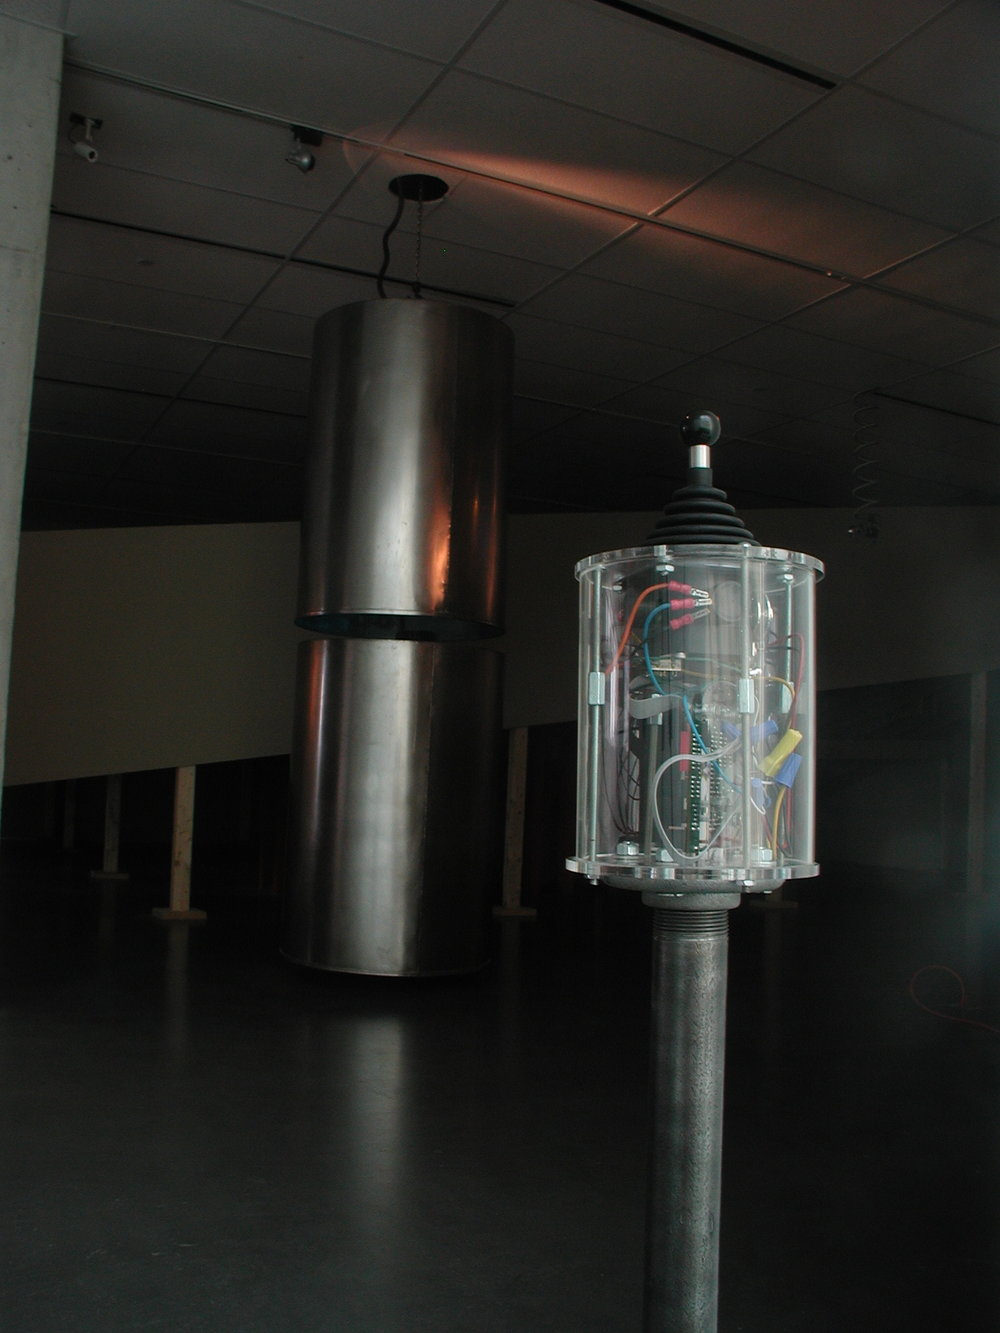 Steel Drums   stainless steel vats, subwoofer drivers, joystick, electronics, computer  4' diameter x 10' high / 2003